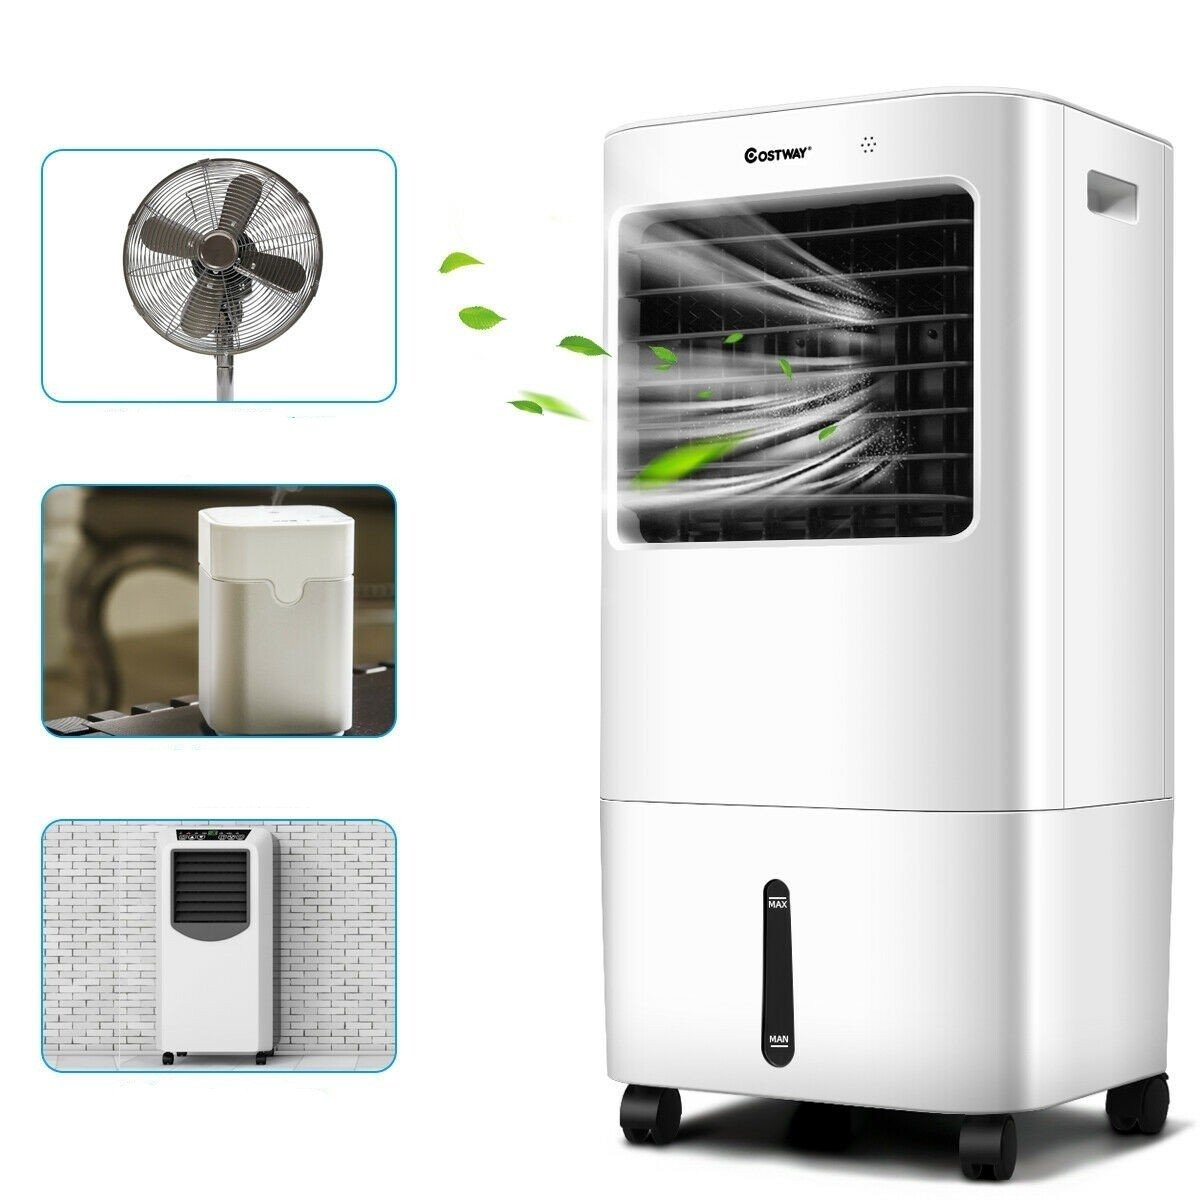 Portable air conditioner unit and air cooler